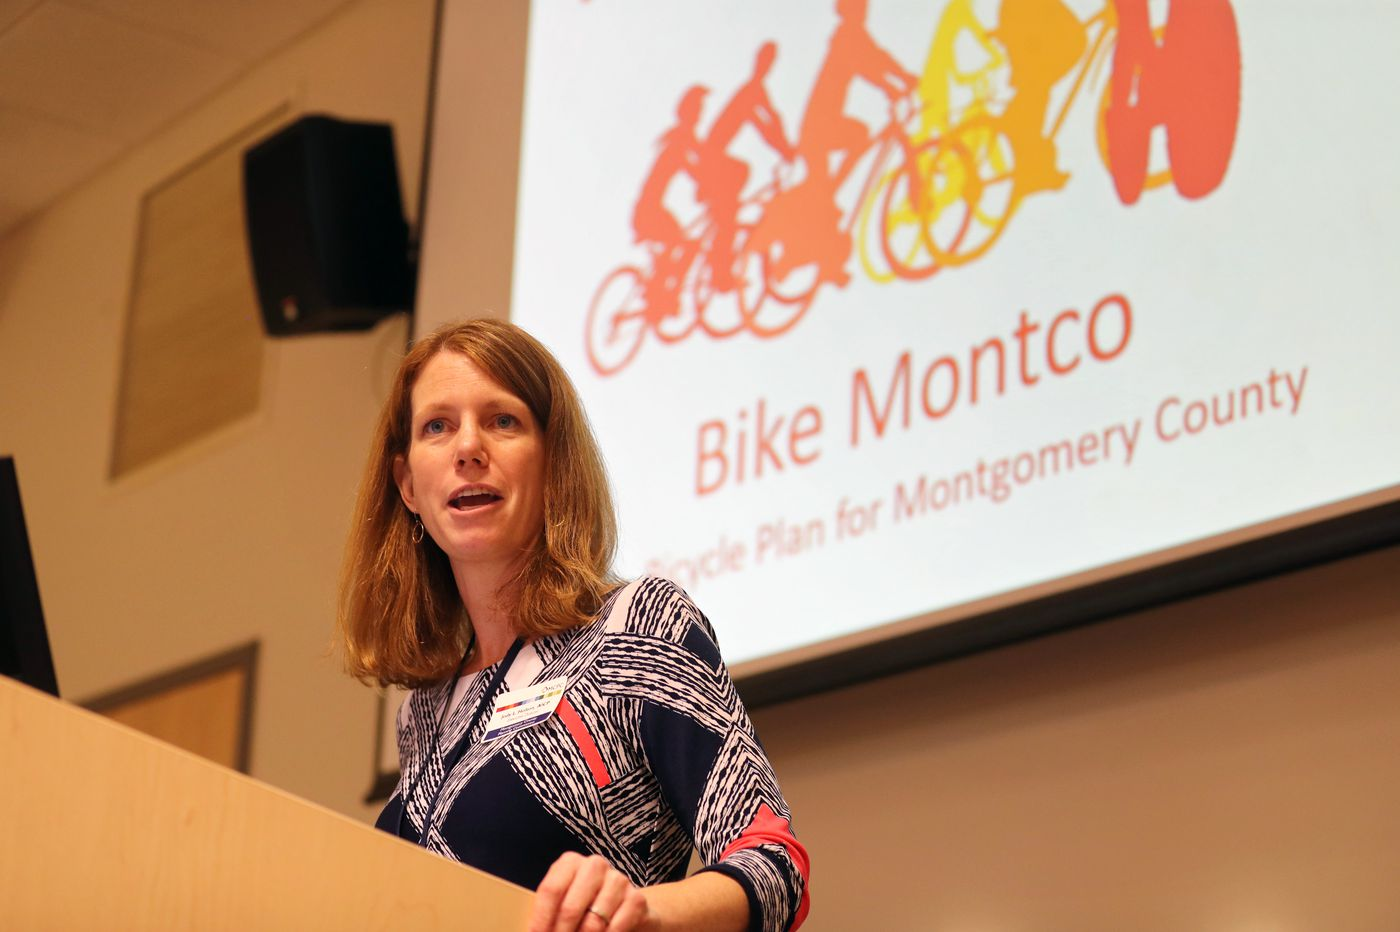 'Bike Montco' initiative envisions 800 miles of new bike paths in suburbia